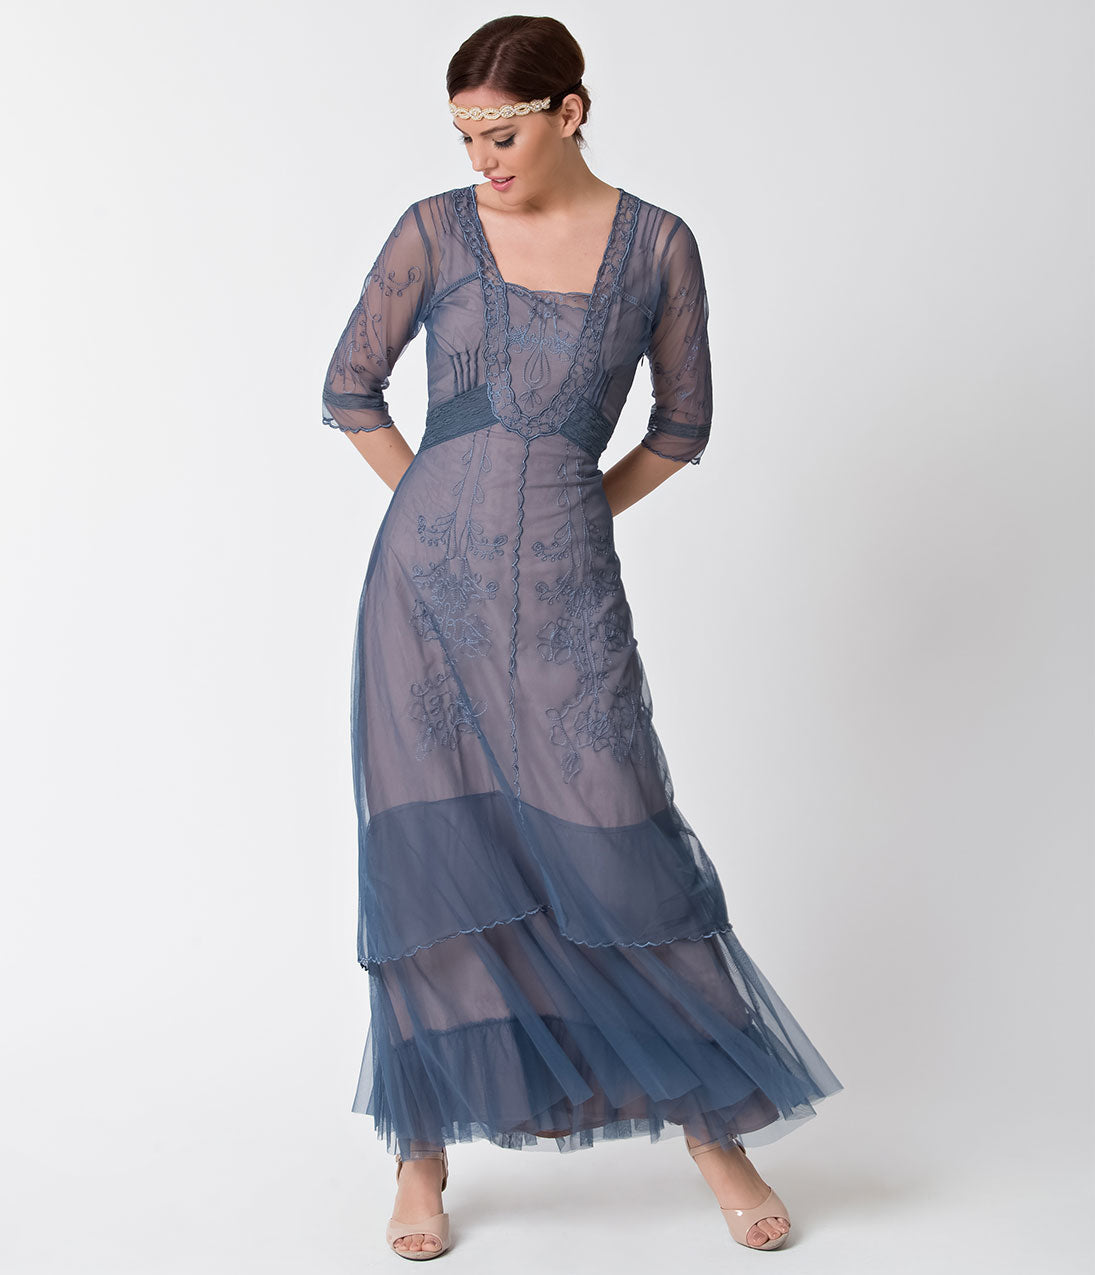 Old fashioned romance dress modcloth careers